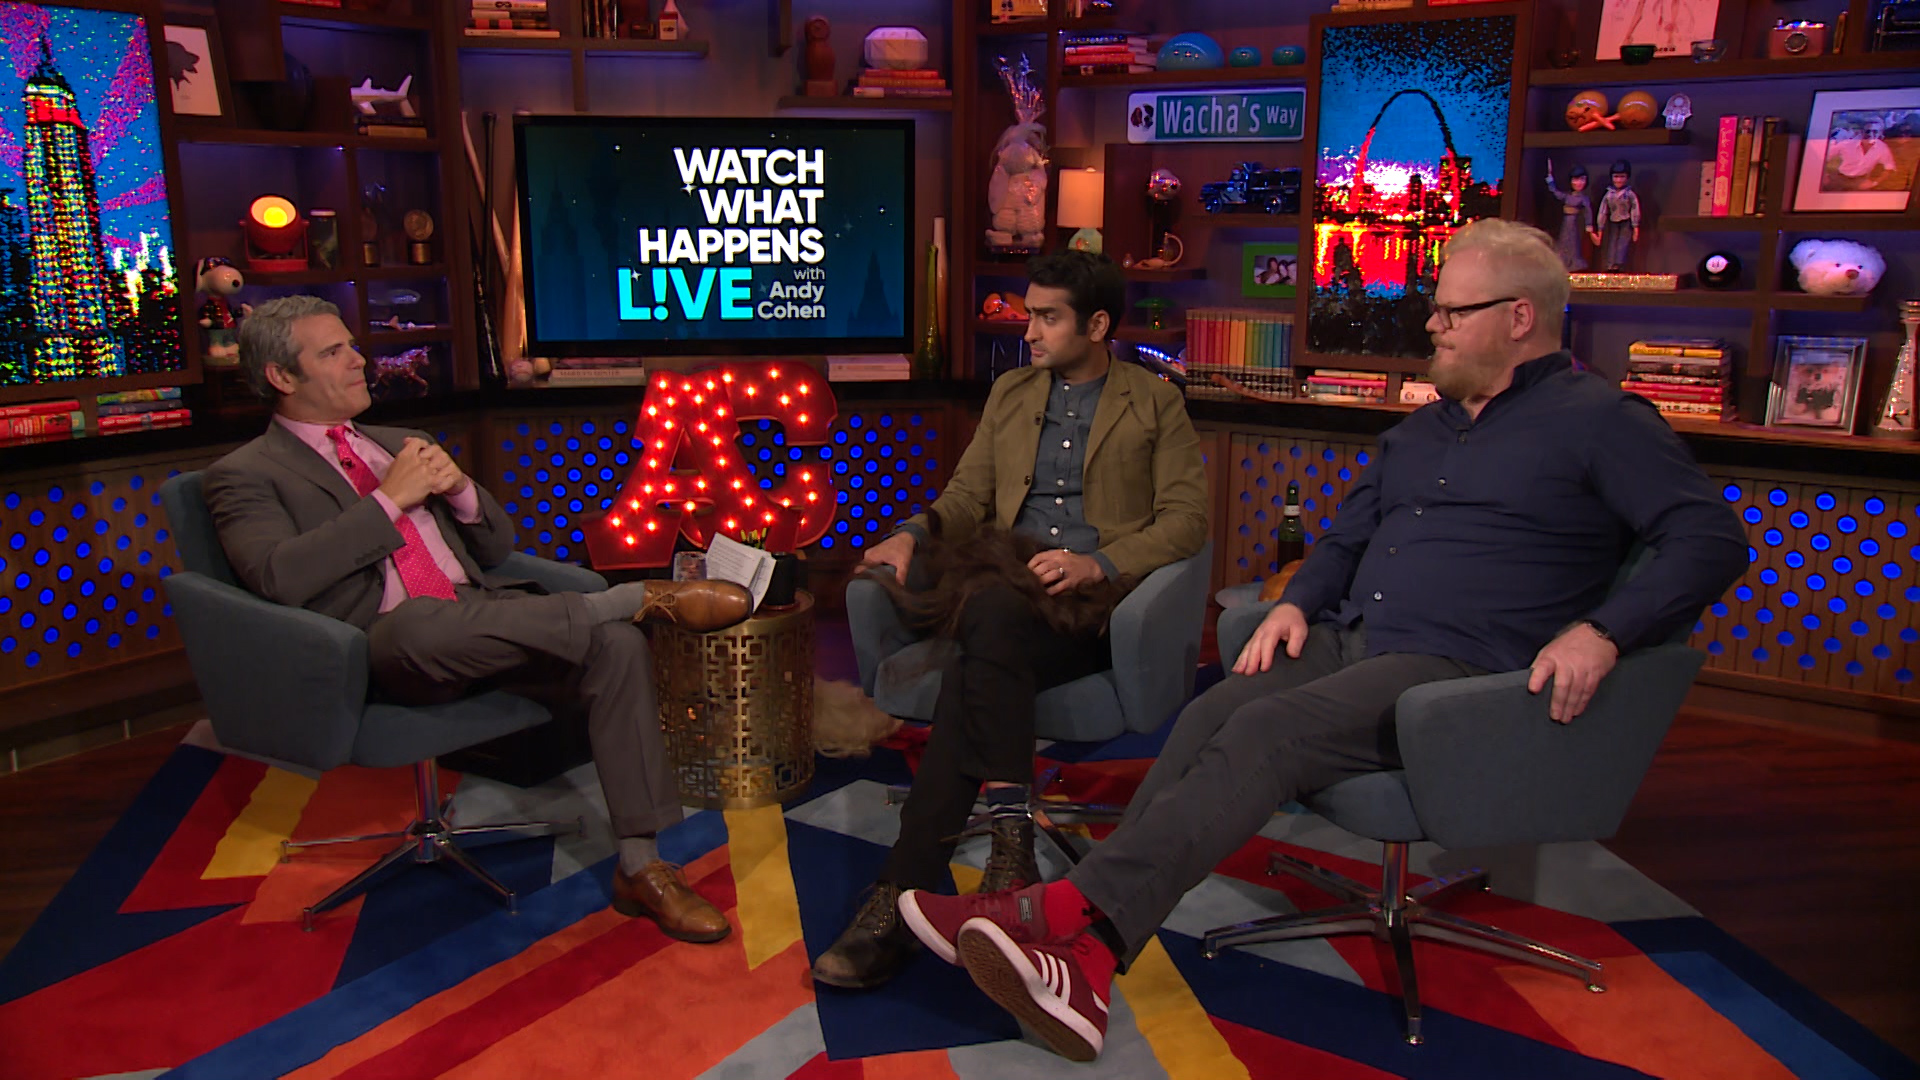 After Show: Kumail Nanjiani & Jim Gaffigan's Taglines